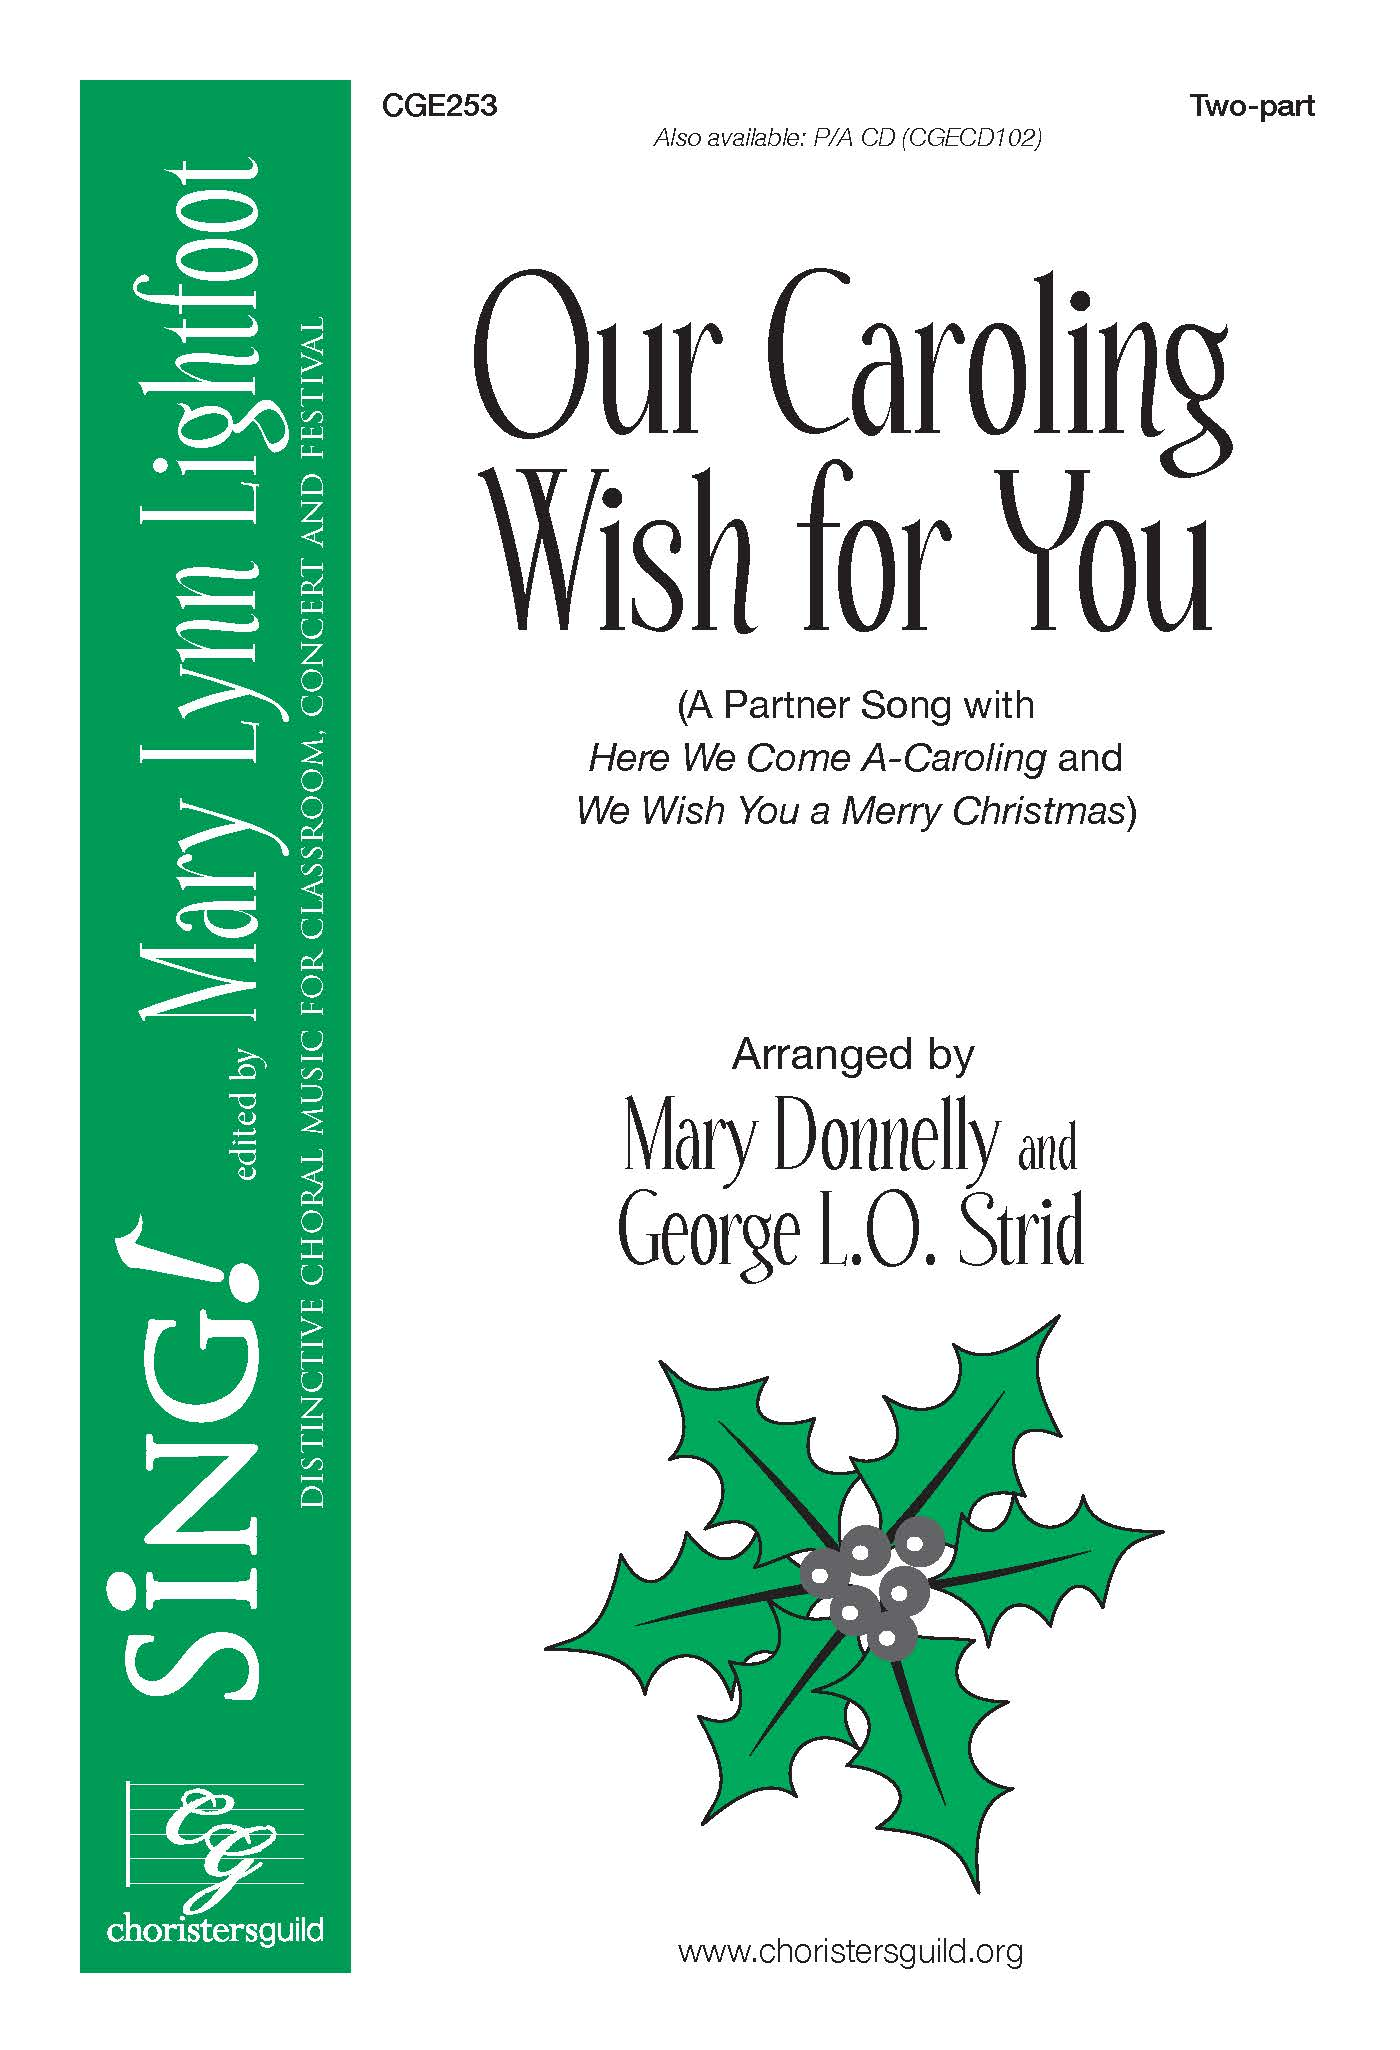 CGE264 Let\'s Sing a Sleighing Song Tonight!CGE253 Our Caroling Wish ...